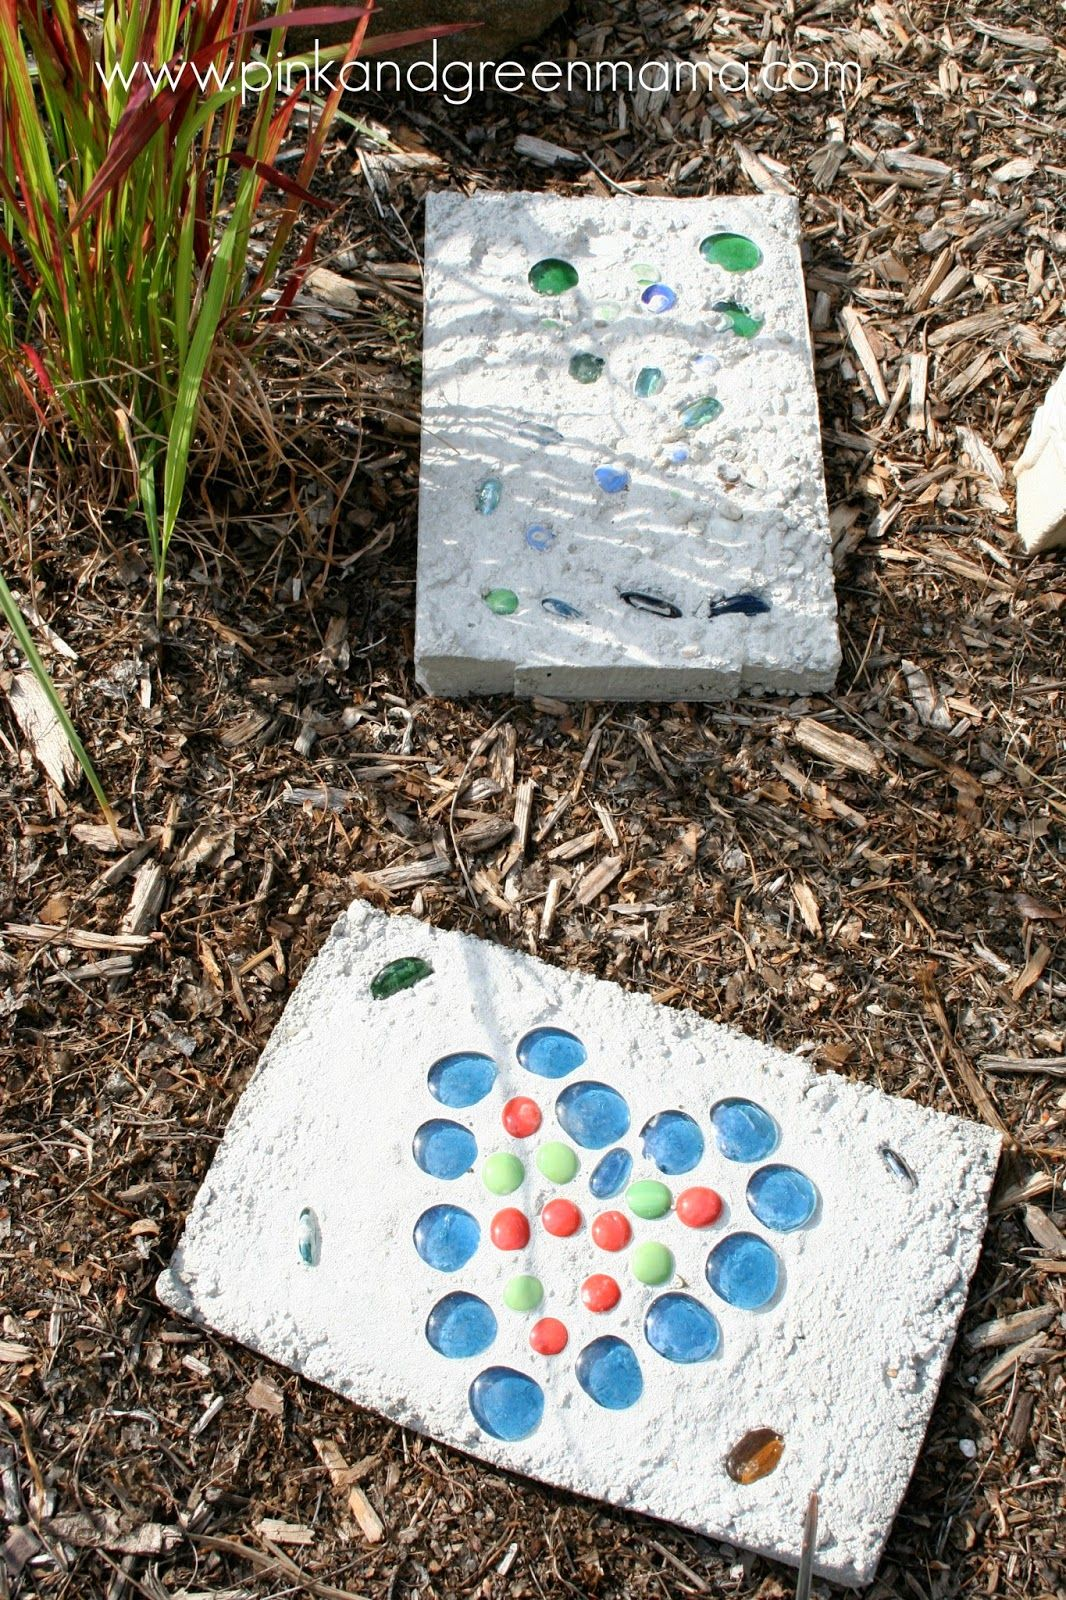 1572258210 750 how to make garden stepping stones with unique and quirky designs - How To Make Garden Stepping Stones With Unique and Quirky Designs